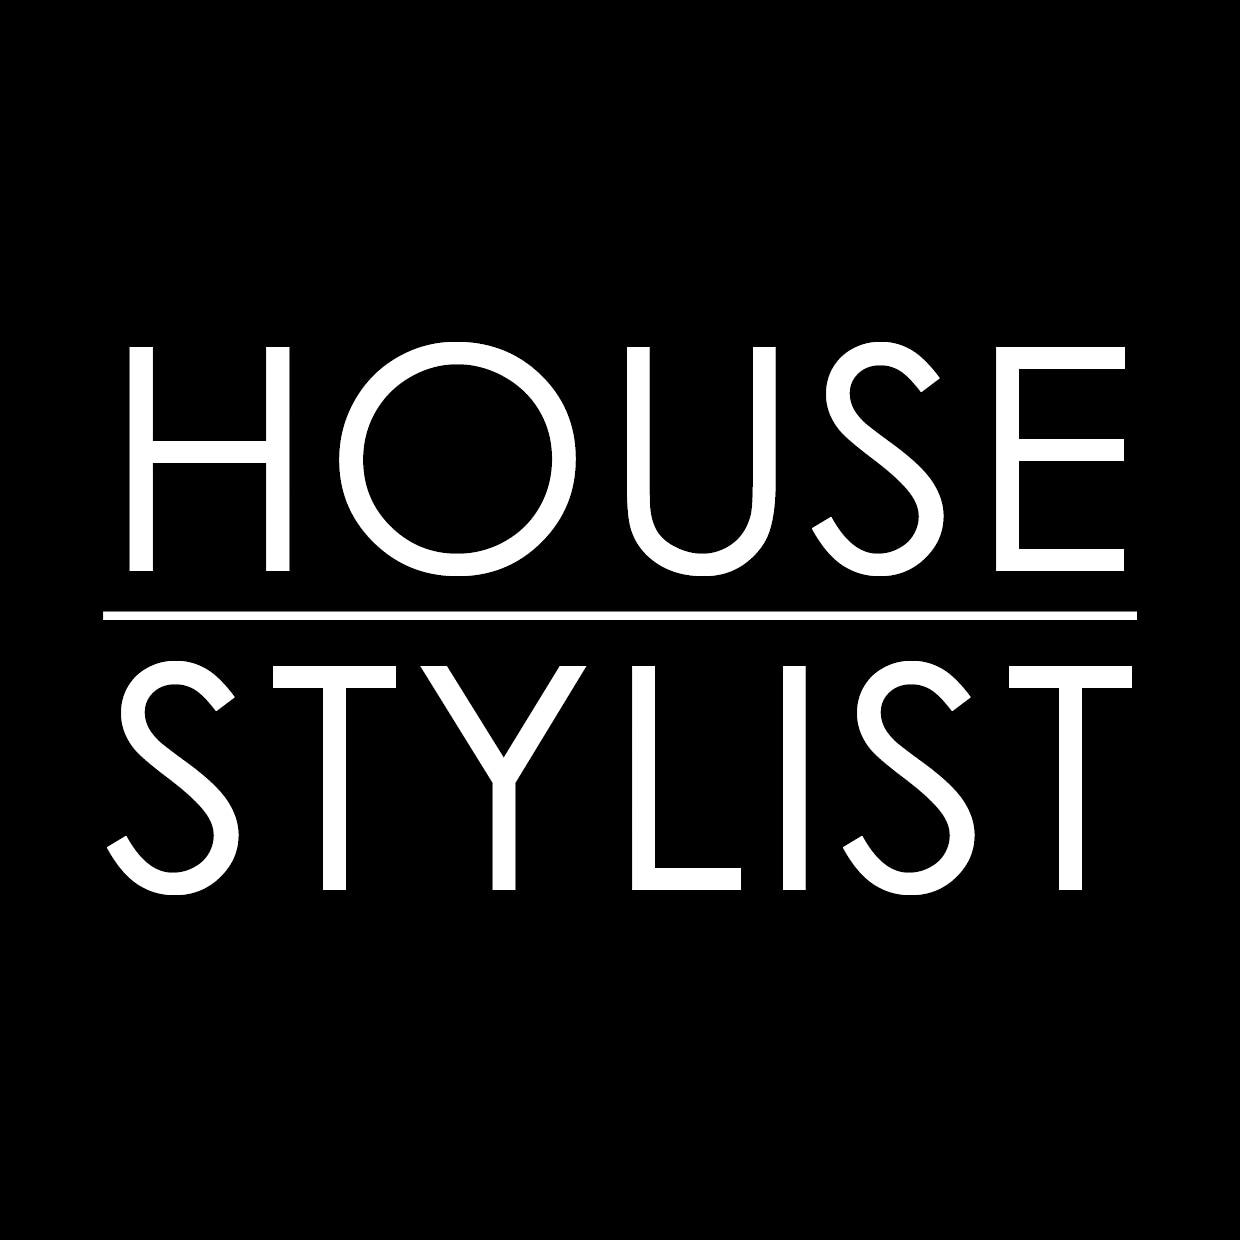 housestylist